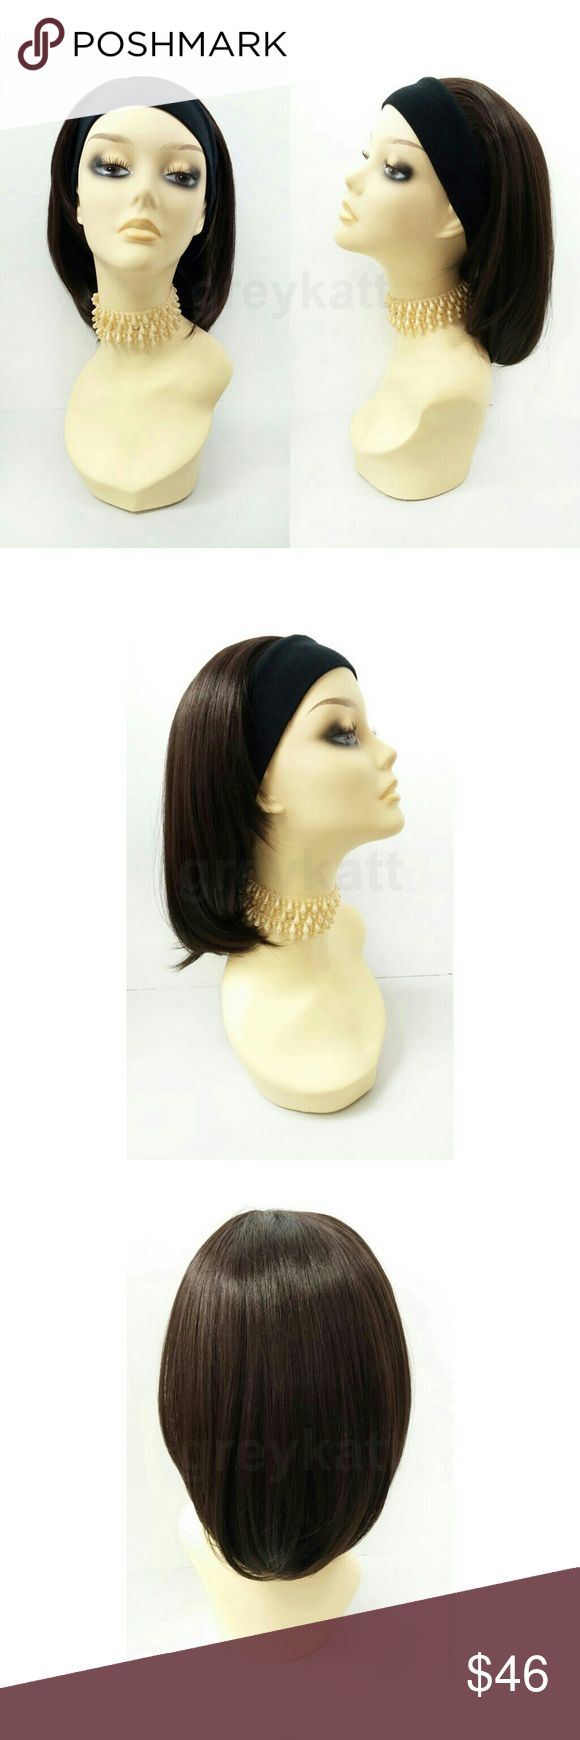 """Brown heat resistant headband wig This stylish wig features short and straight brown locks and a sewn-in black headband. Made with heat-resistant synthetic fibers which prevent loss of style even after washing and can be styled with heating tools such as curling irons and heated rollers.  Color: Dark Brown (4) Length: 14"""" inches Circumference: Default at 21"""" with adjustable cap (max 22"""") Materials: Premium Heat Resistant Synthetic Fibers  Wig prices are firm. Accessories Hair Accessories"""